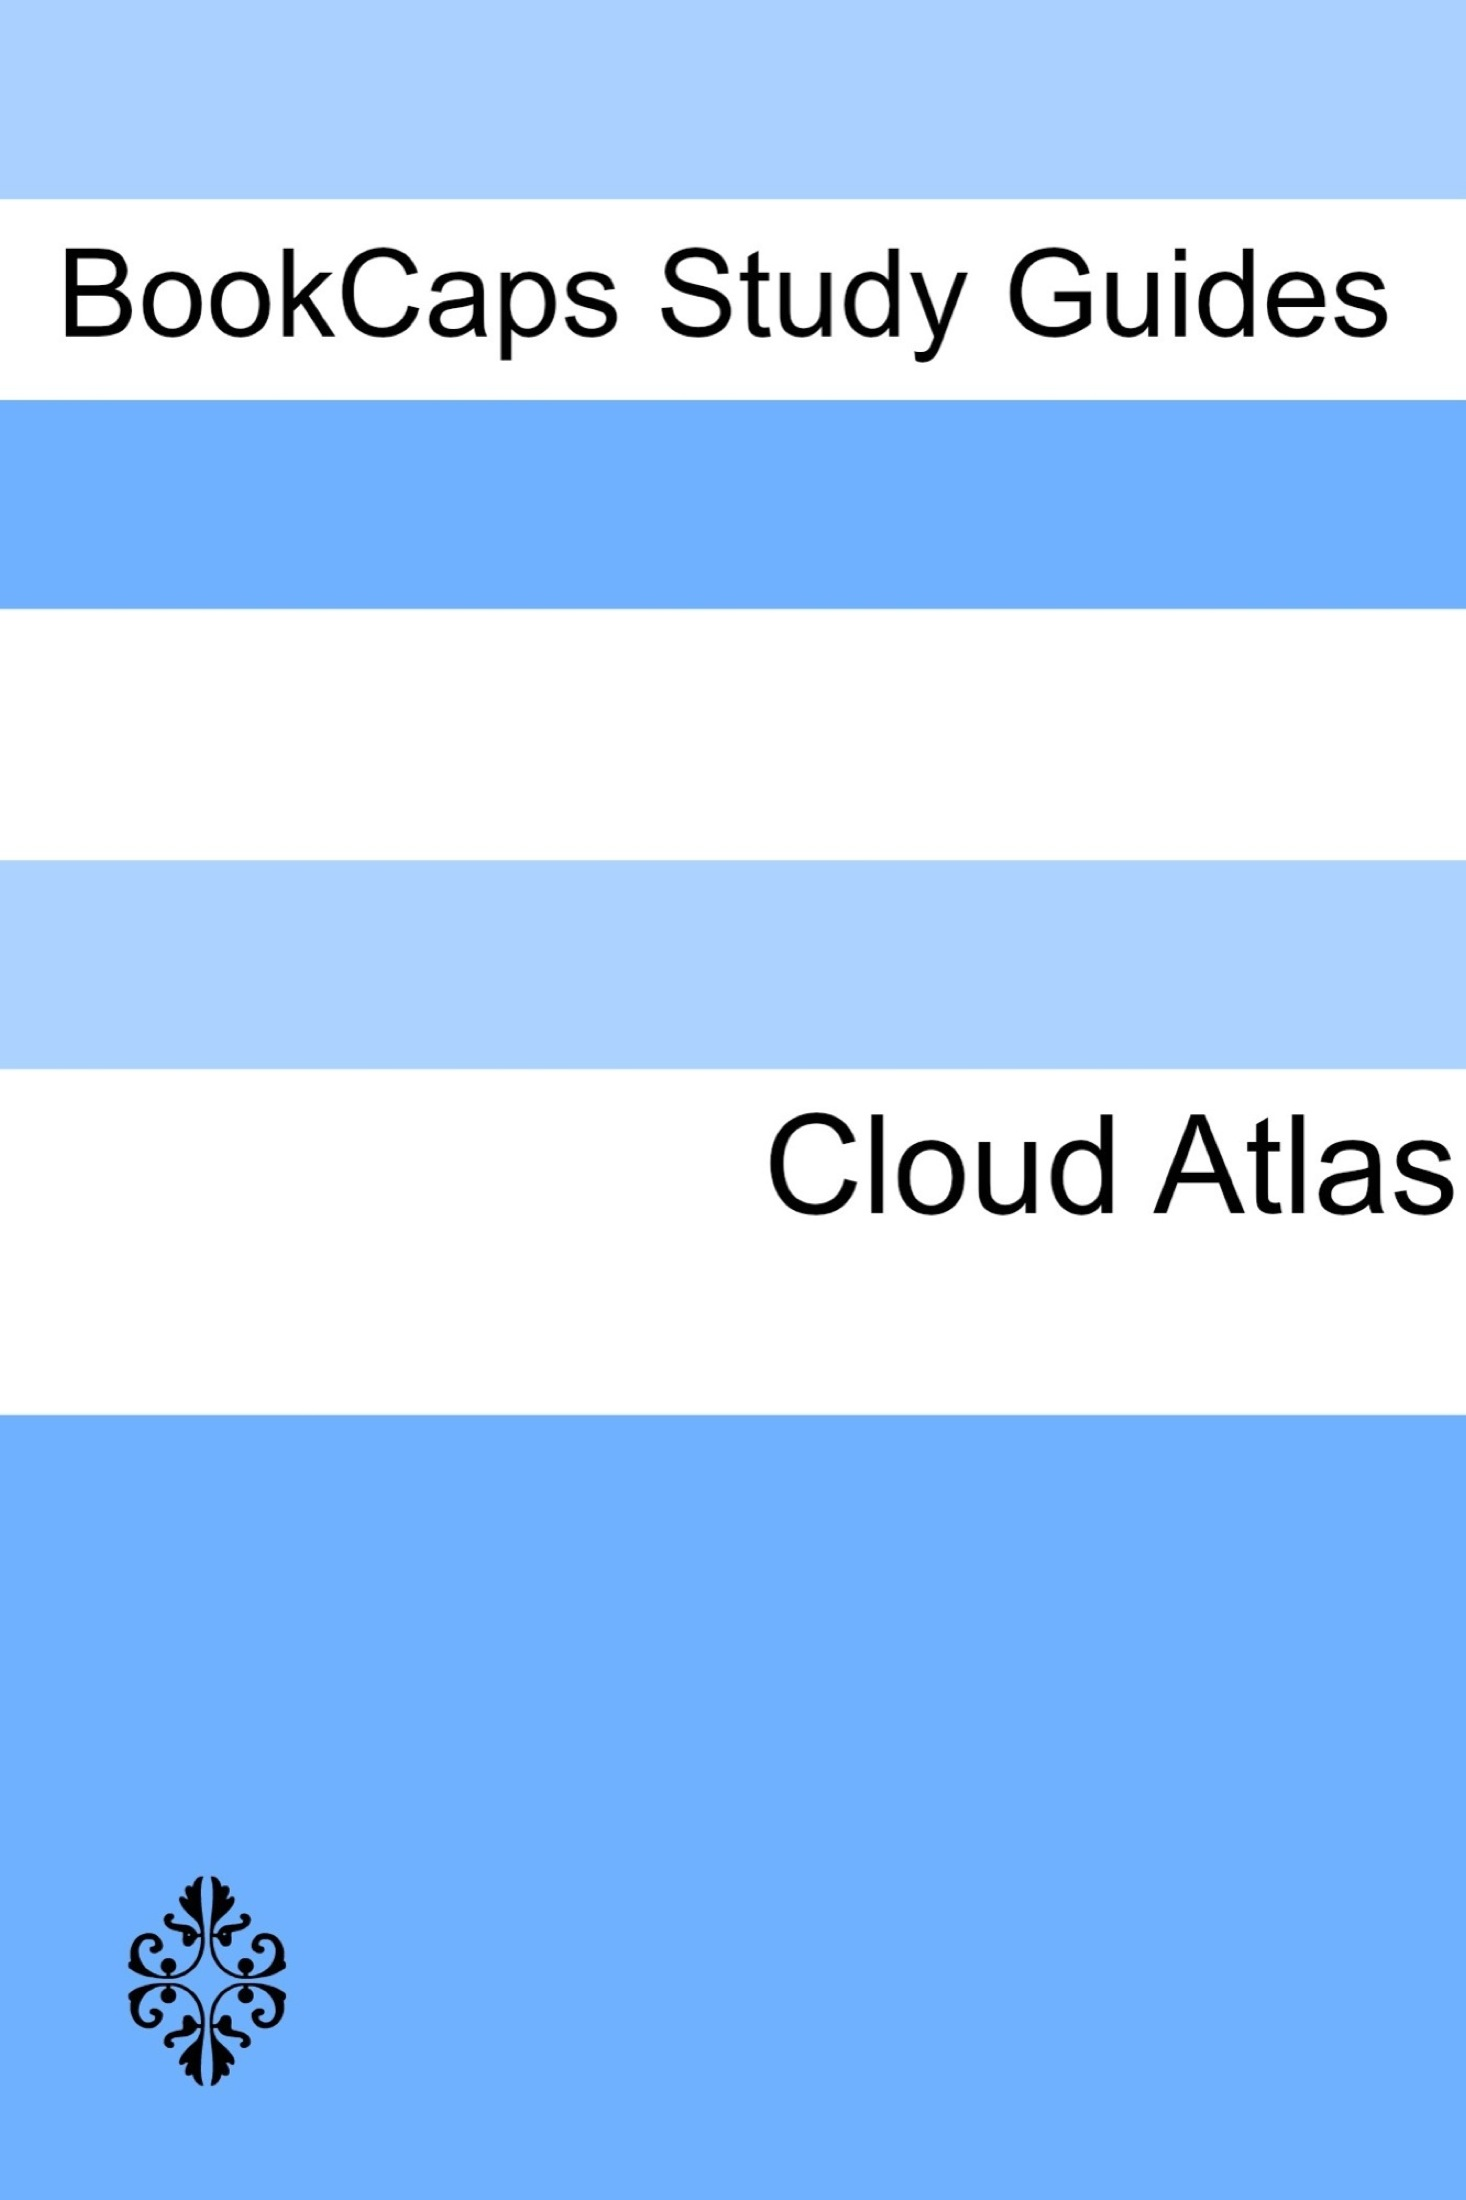 Study Guide: Cloud Atlas (A BookCaps Study Guide)